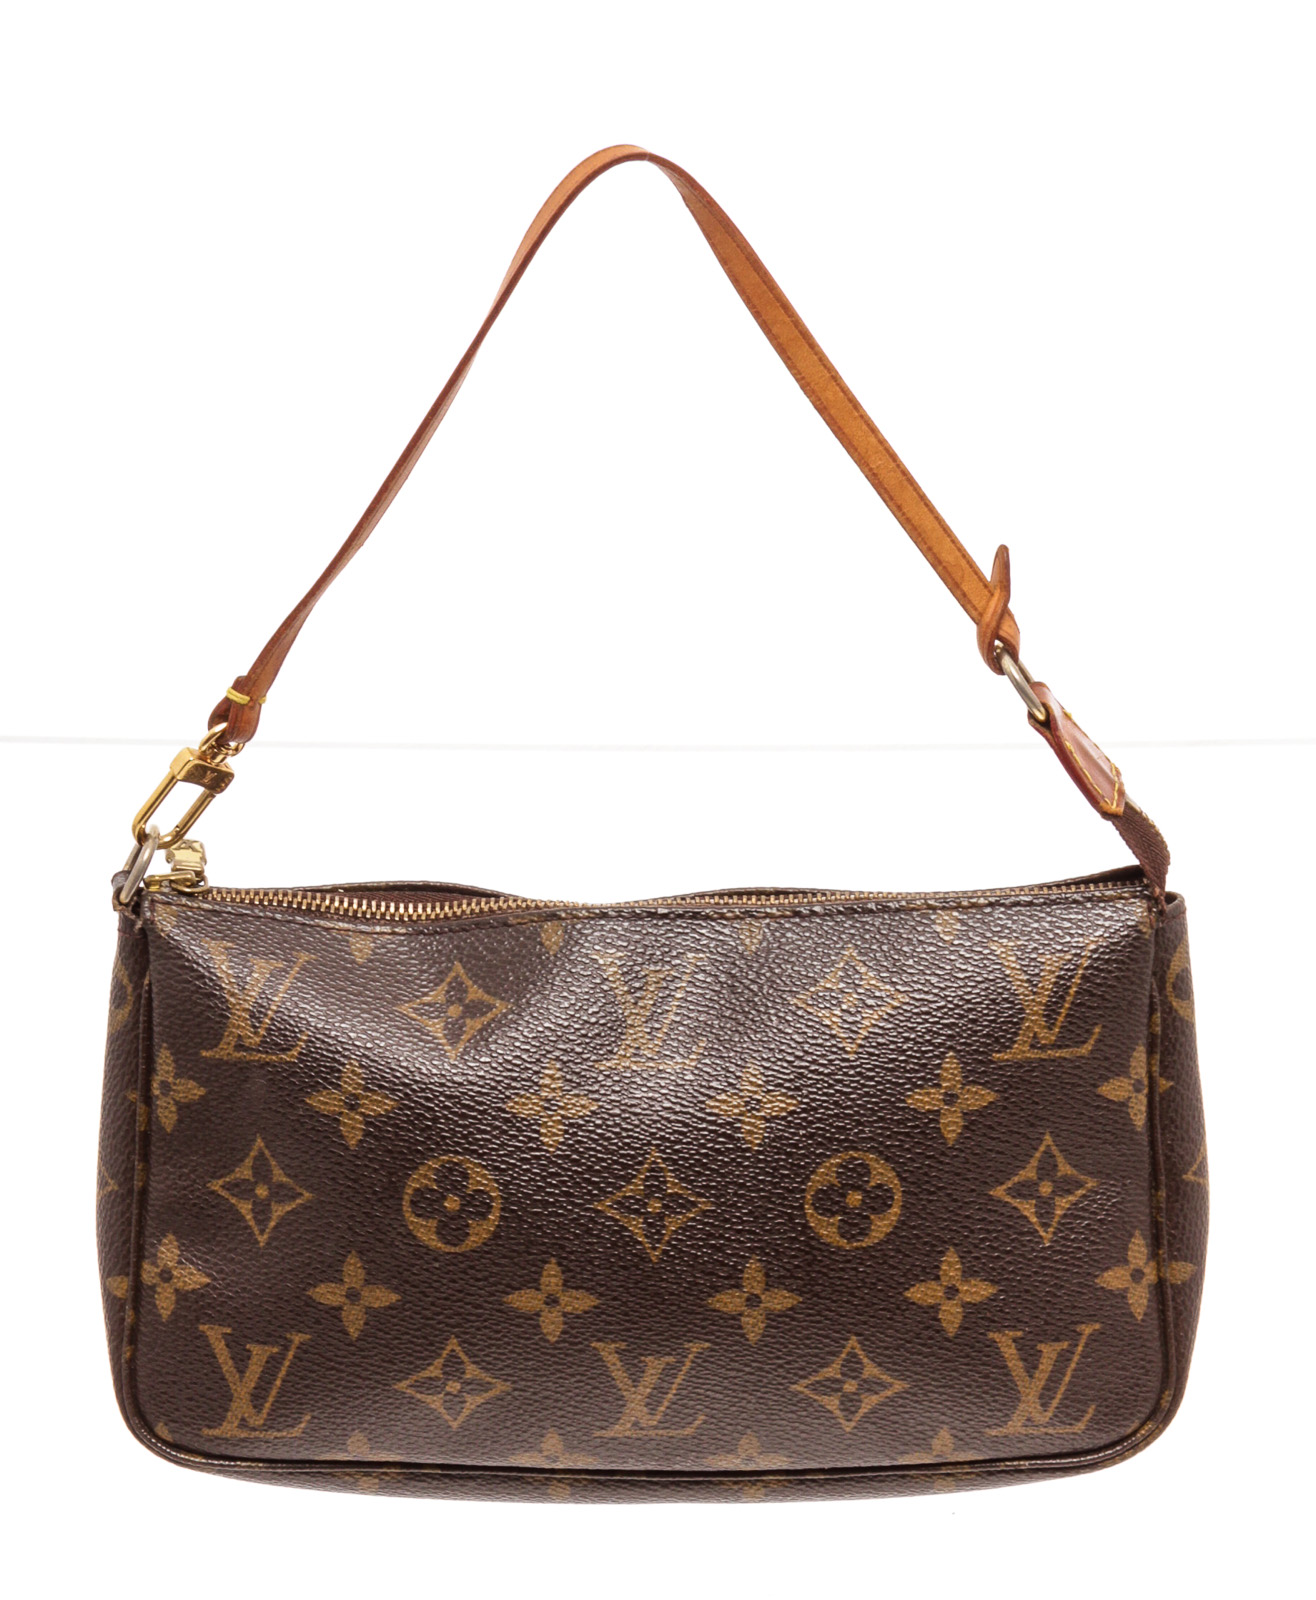 Louis Vuitton Monogram Pochette Accessories Marque Luxury.jpg